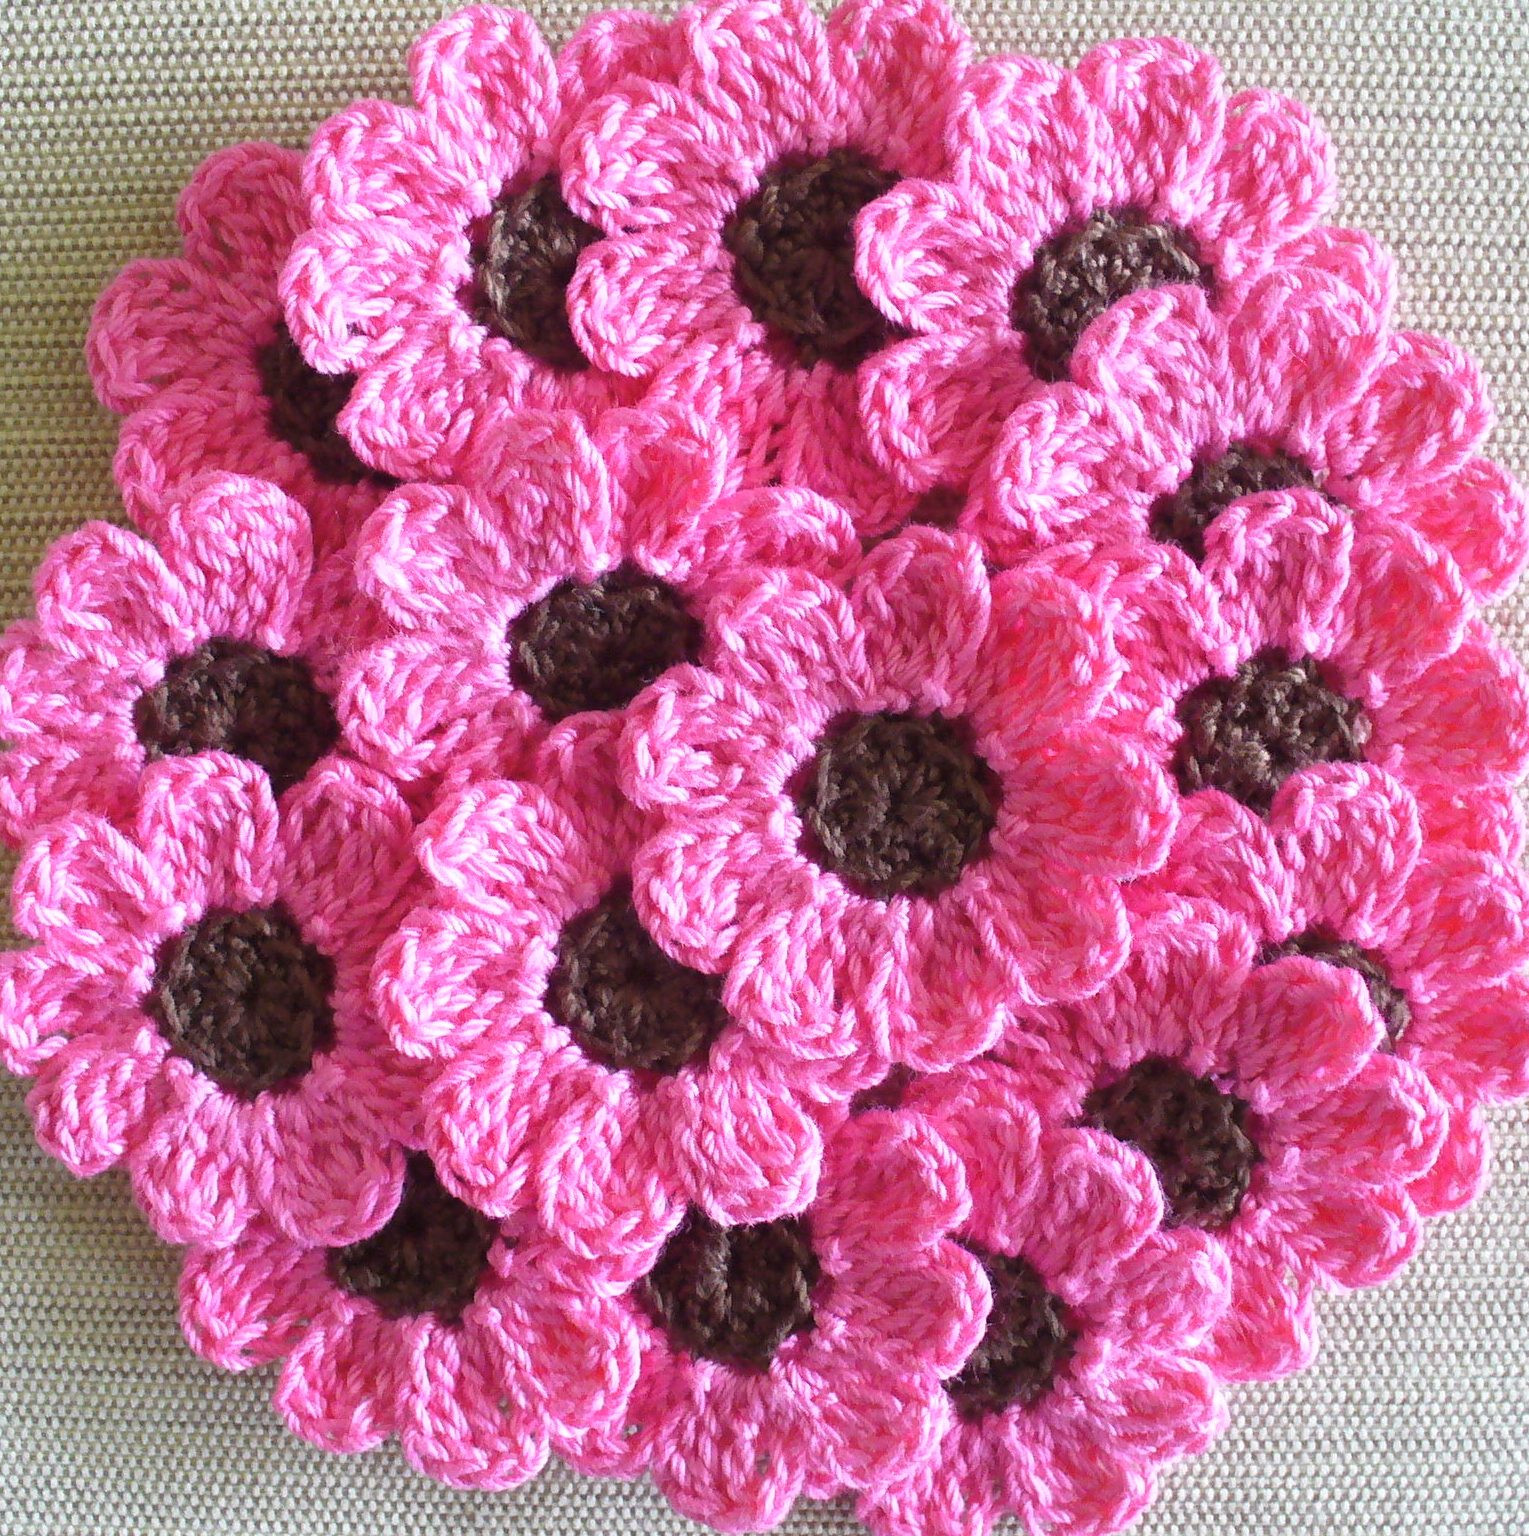 Crochet Flower Pattern Luxury Pink Crochet Flowers Daisies 16 Small Handmade Appliques Of Marvelous 41 Pics Crochet Flower Pattern